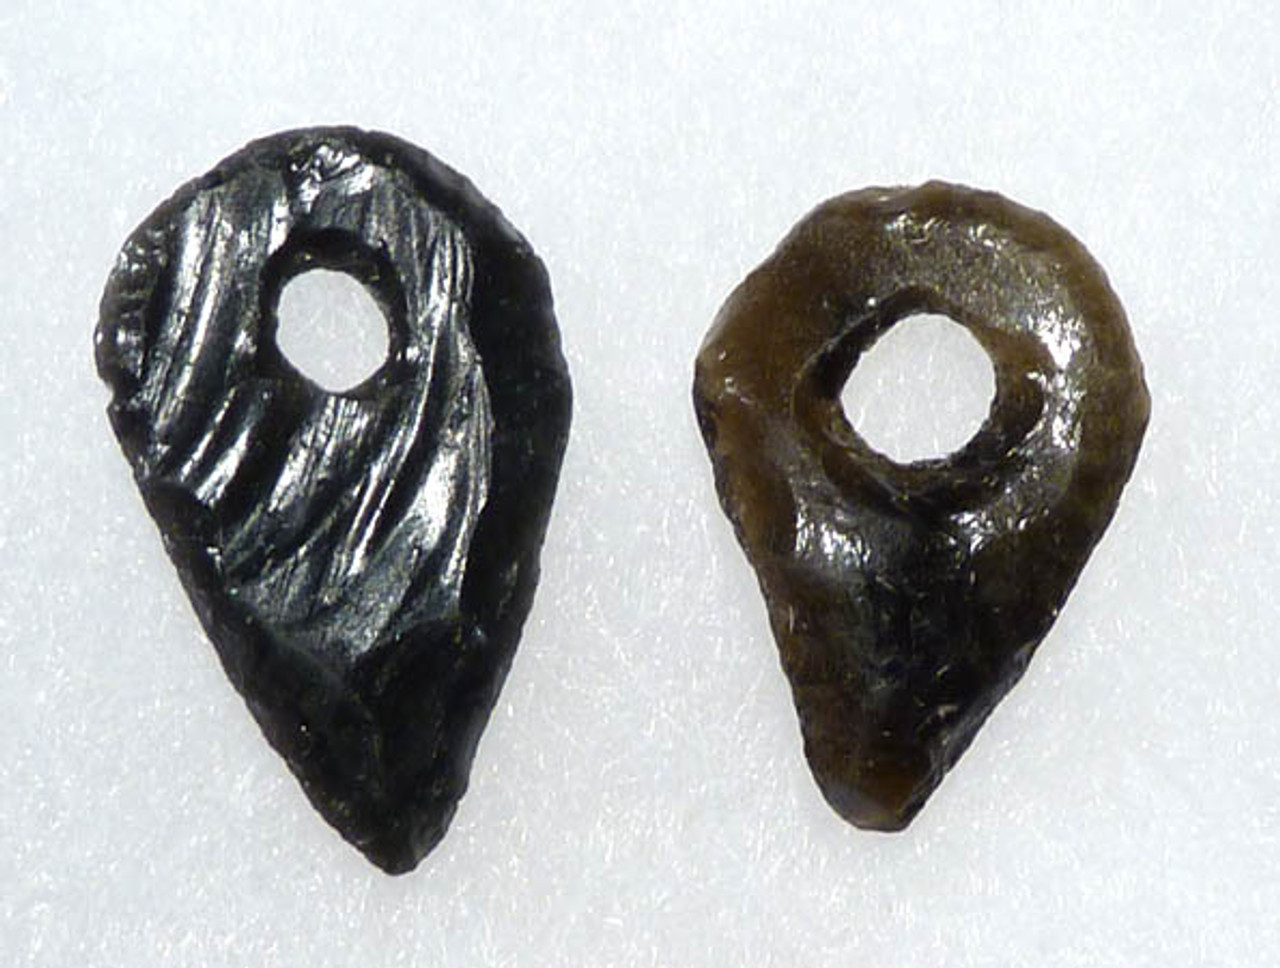 PC011  -   RARE UNUSUAL PAIR OF PIERCED SYMBOLIC OBSIDIAN TEARDROP OBJECTS FROM THE ANCIENT PRE-COLUMBIAN TEOTIHUACAN CULTURE